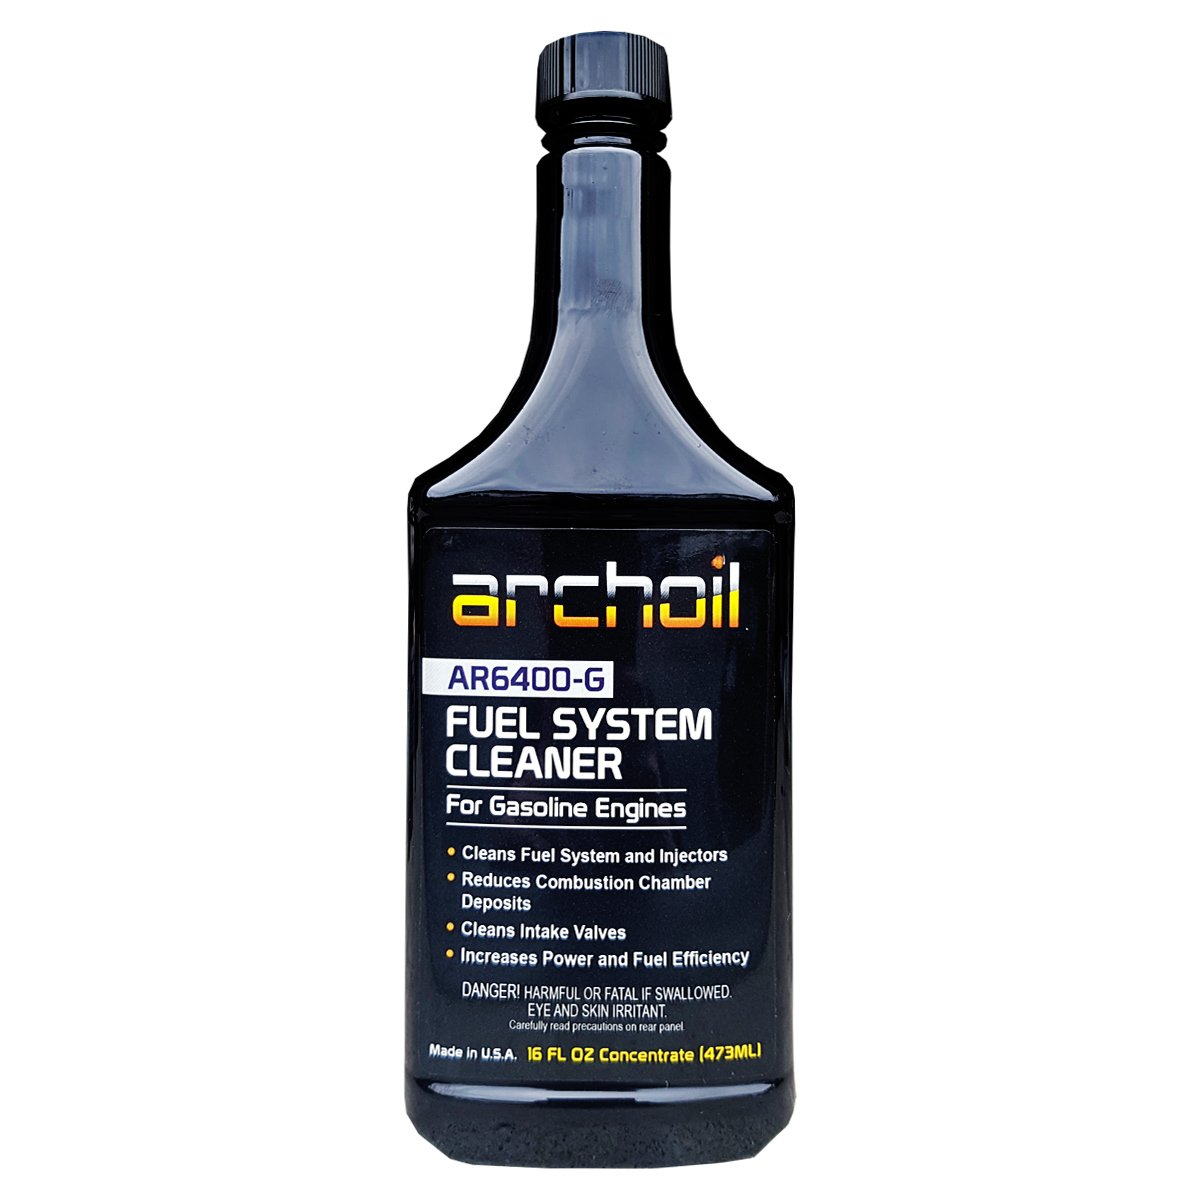 AR6400-G (16Oz) - Professional Fuel System and Engine Cleaner (Treats 25 Gallons of Gasoline)